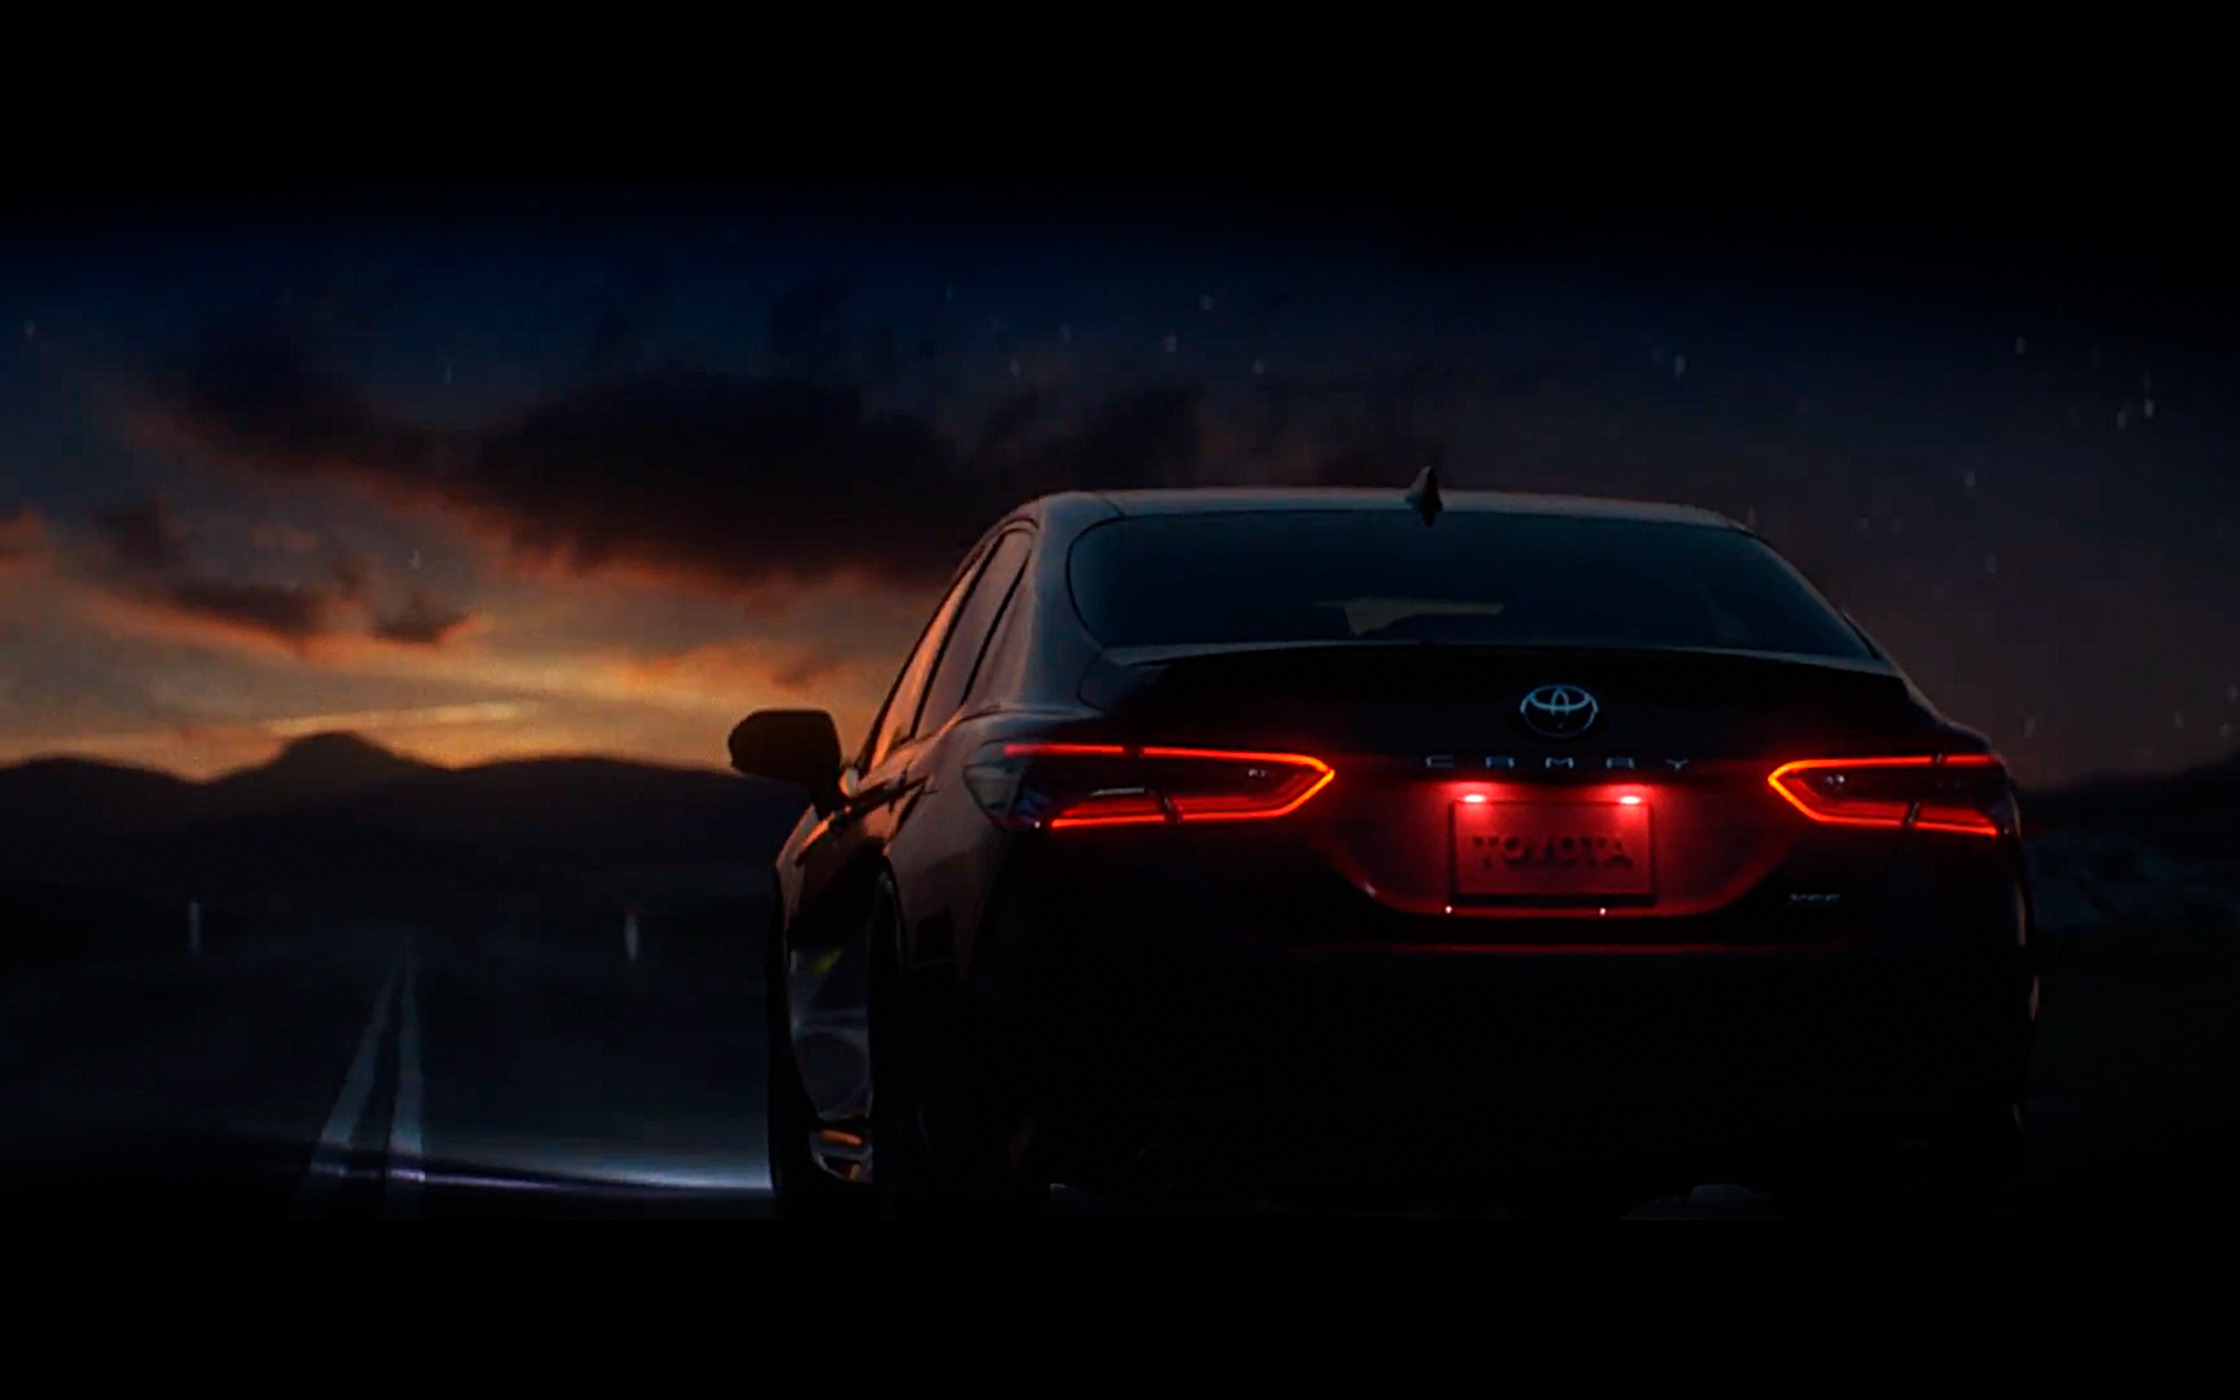 CAMRY Emotional Benefit Video